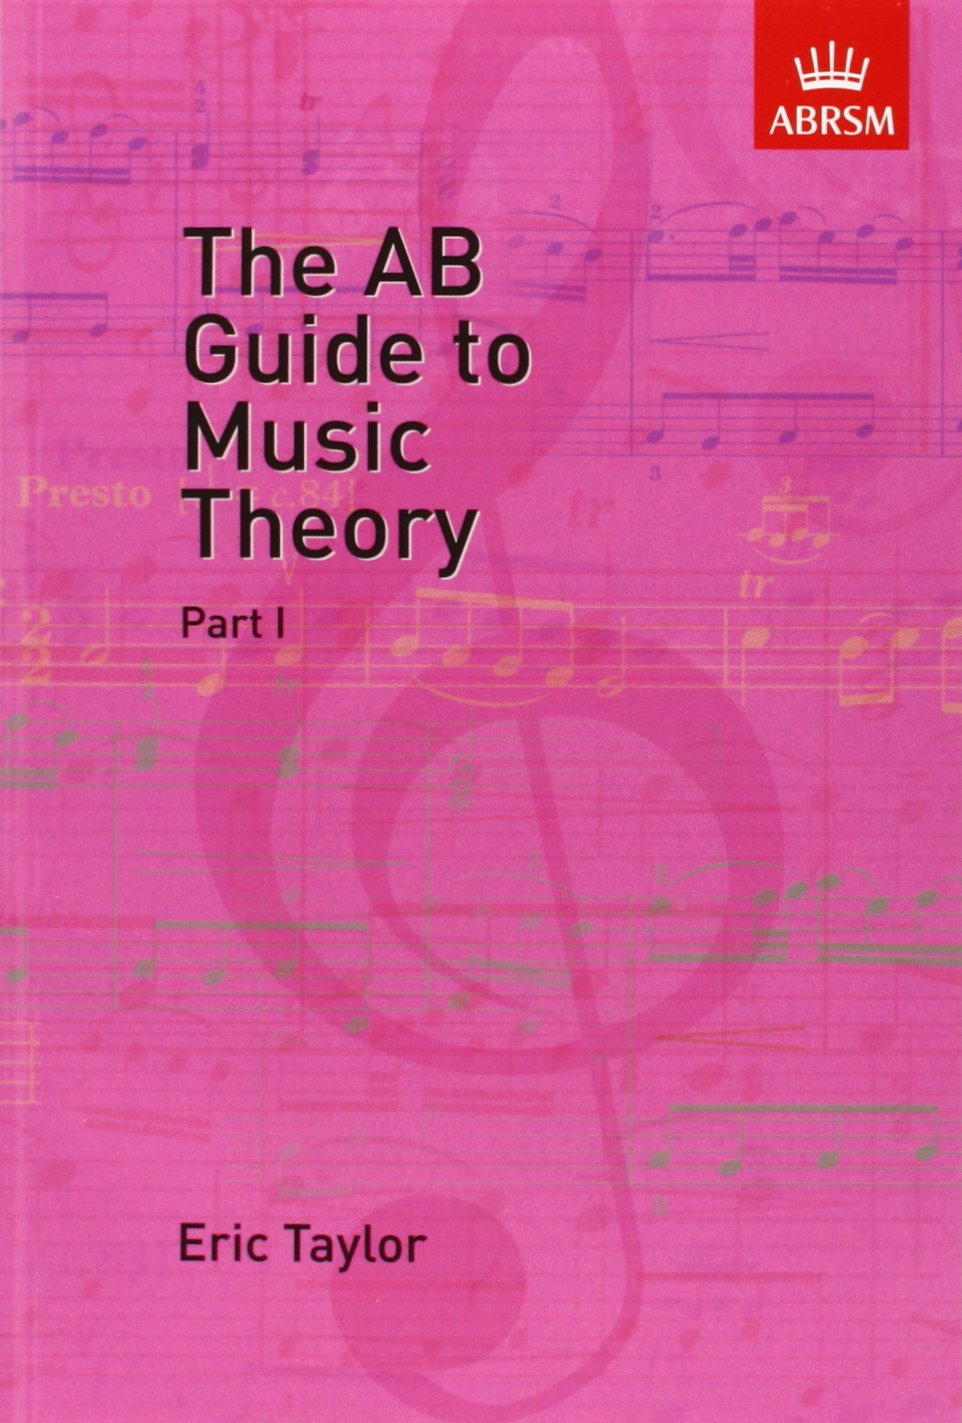 the ab guide to music theory part 1 pt 1 eric taylor rh amazon com ab guide to music theory part 1 pdf ab guide to music theory part 2 pdf free download